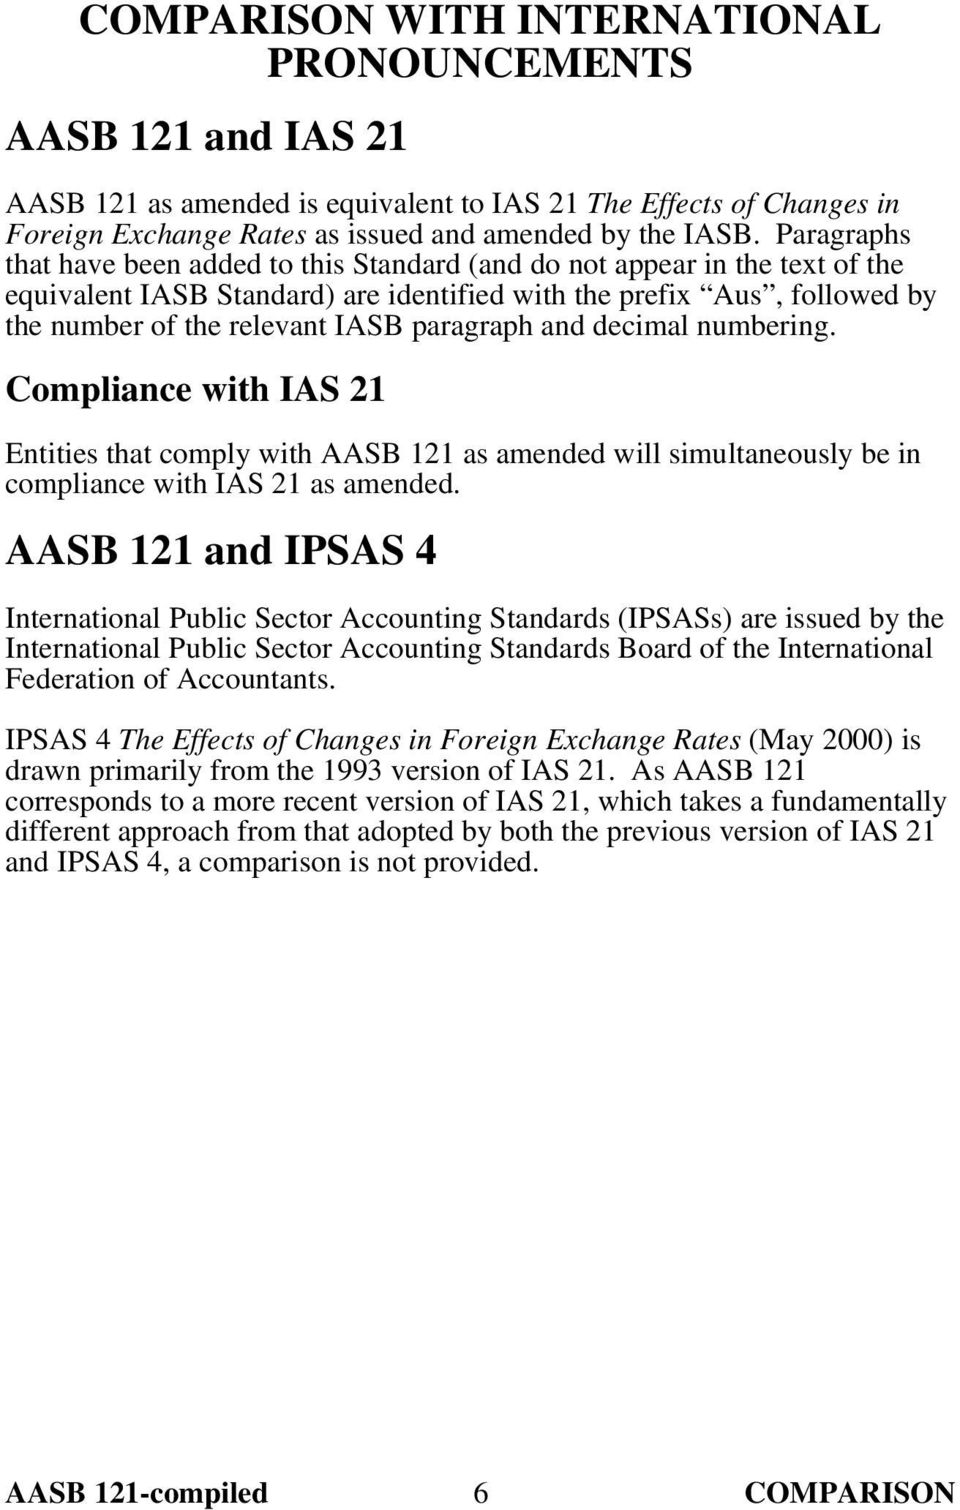 paragraph and decimal numbering. Compliance with IAS 21 Entities that comply with AASB 121 as amended will simultaneously be in compliance with IAS 21 as amended.